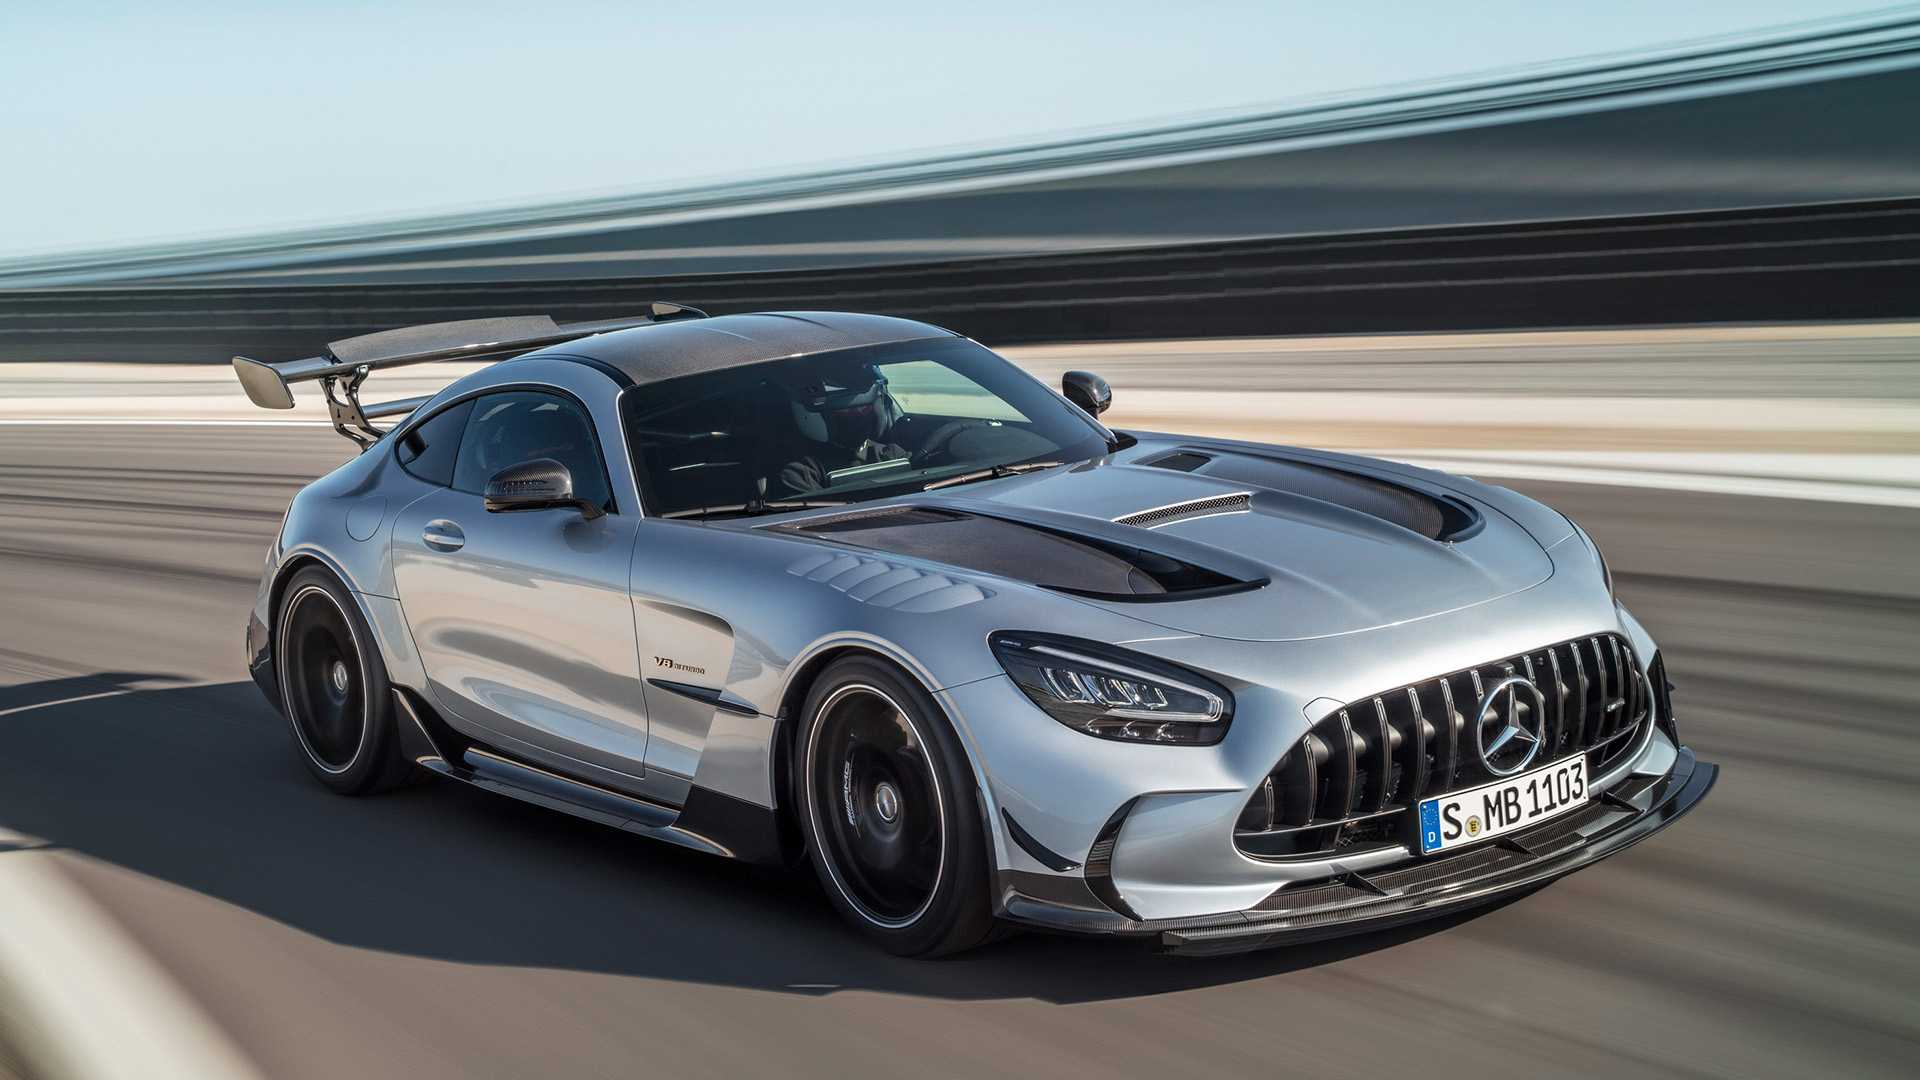 2021 Mercedes-AMG GT Black Series Revealed: Big Power, Bigger Wing